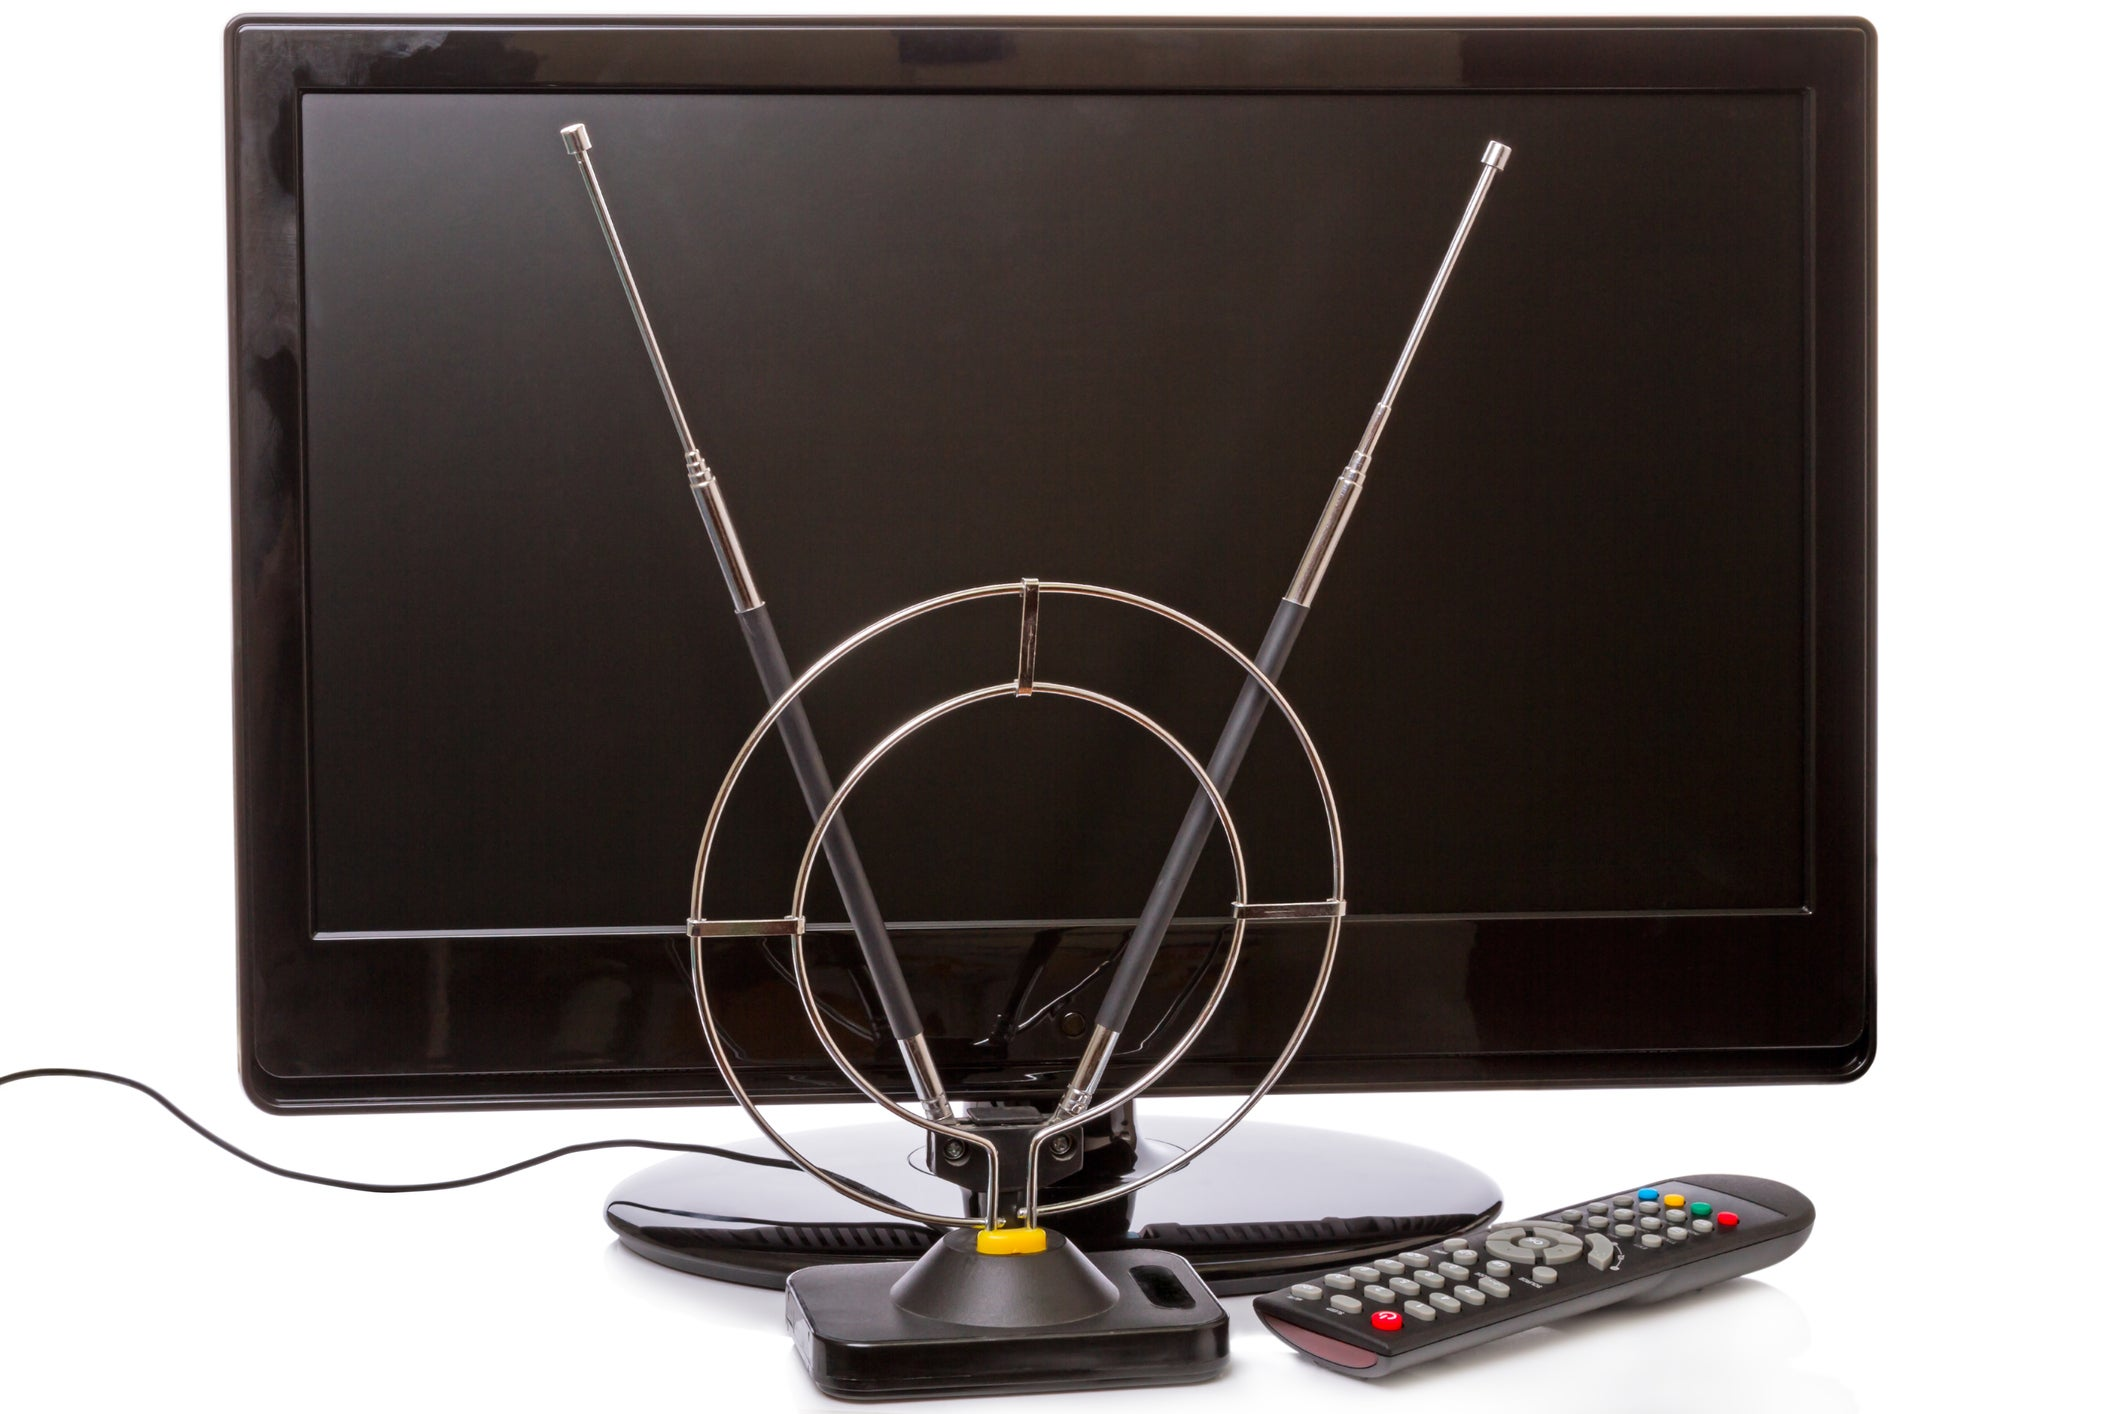 Cable Television Continues to Lose Ground to ... Old-Fashioned Antennas?   The Motley Fool